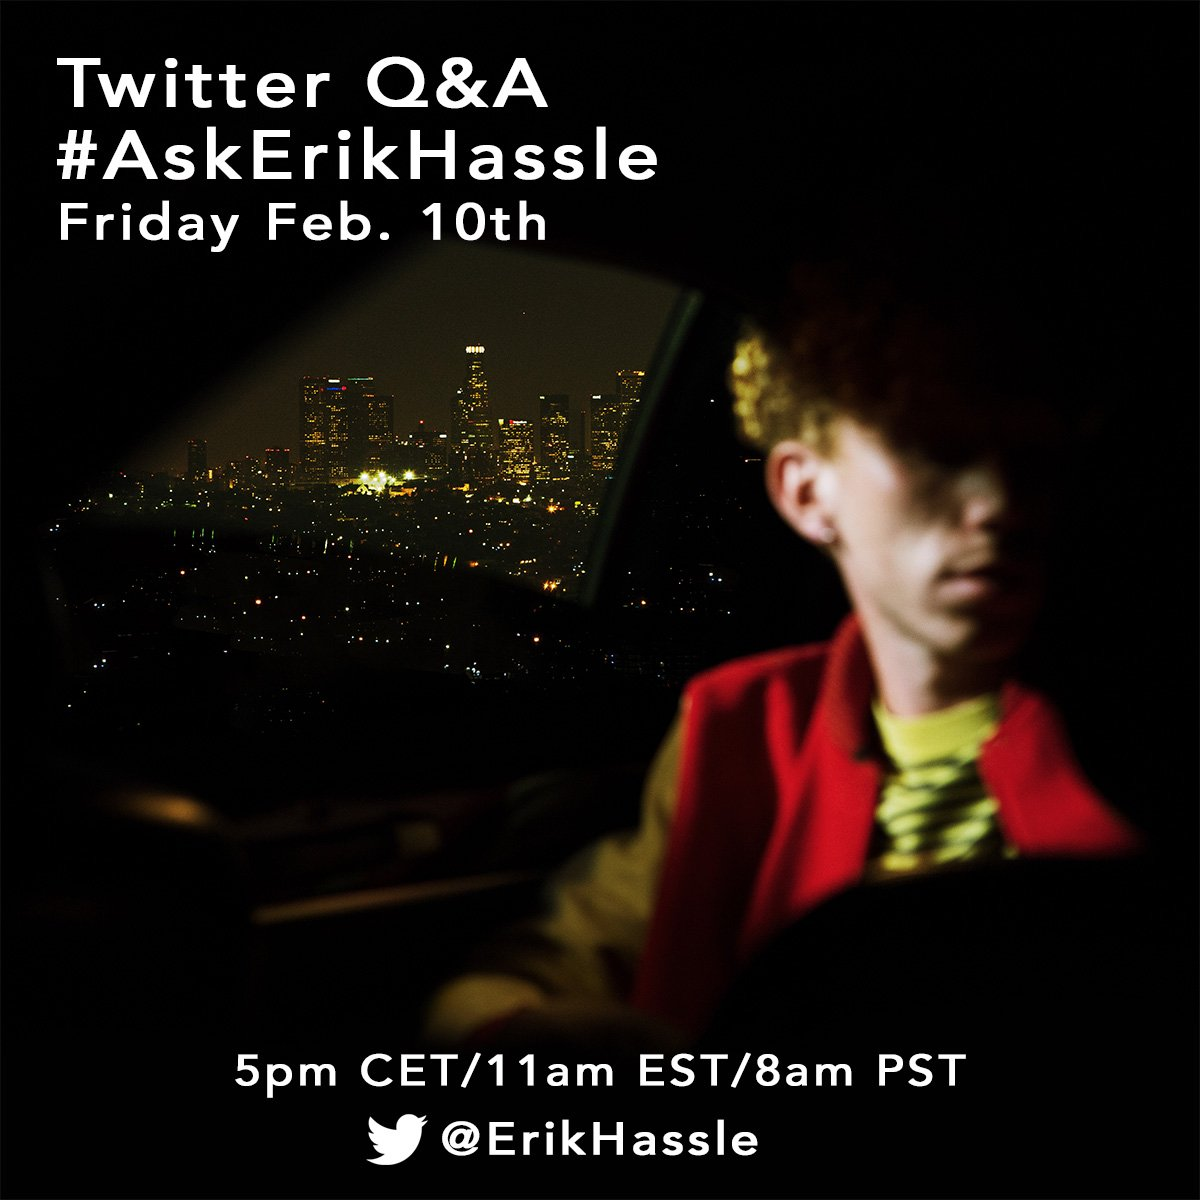 Doin a Q&A later today! Ask me anything with #AskErikHassle